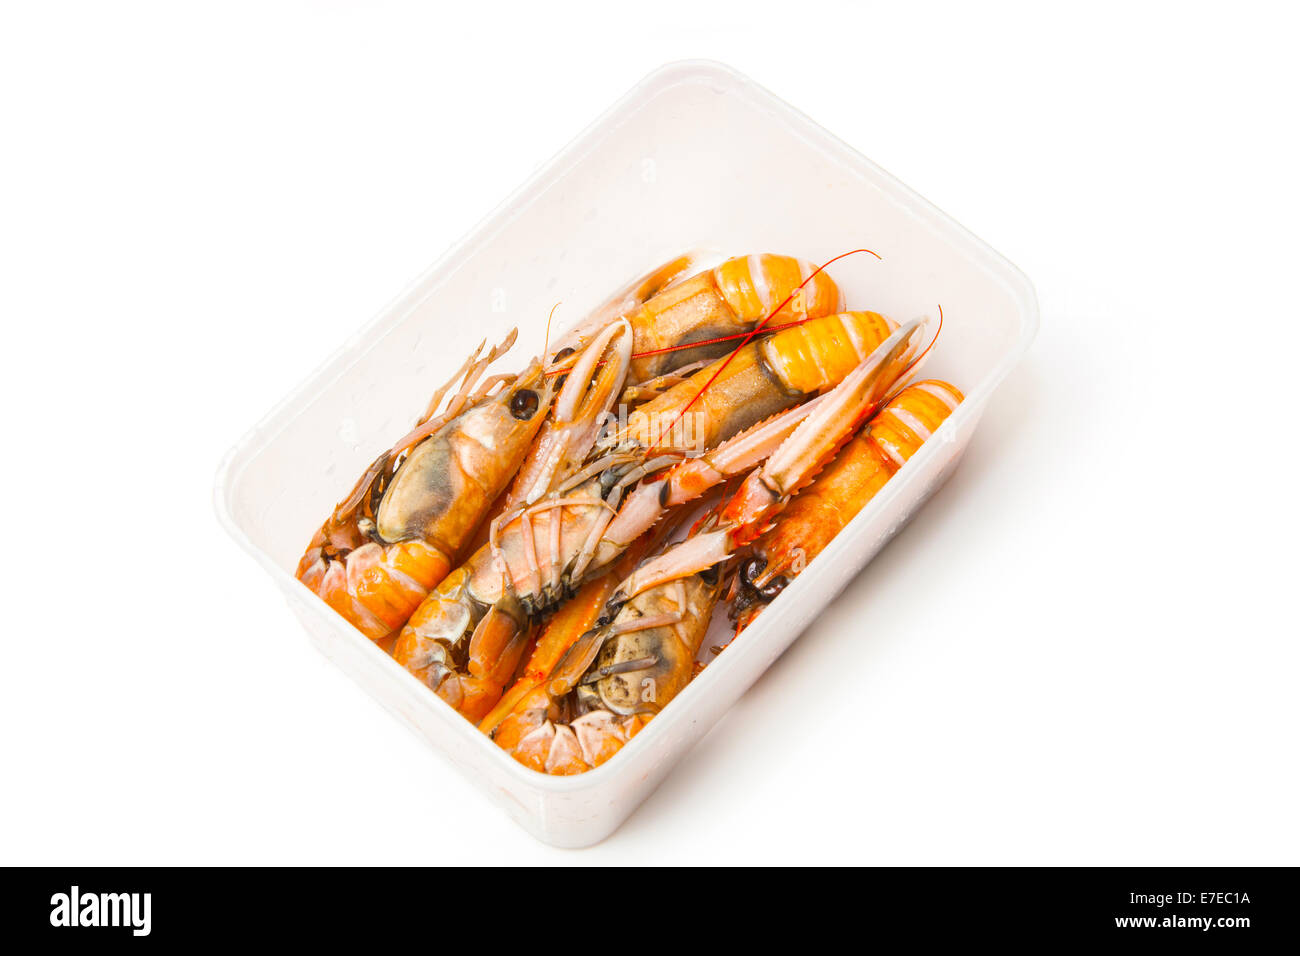 Langoustine  (Nephrops norvegicus),Dublin Bay Prawn or Norway Lobster isolated on a white studio background. - Stock Image